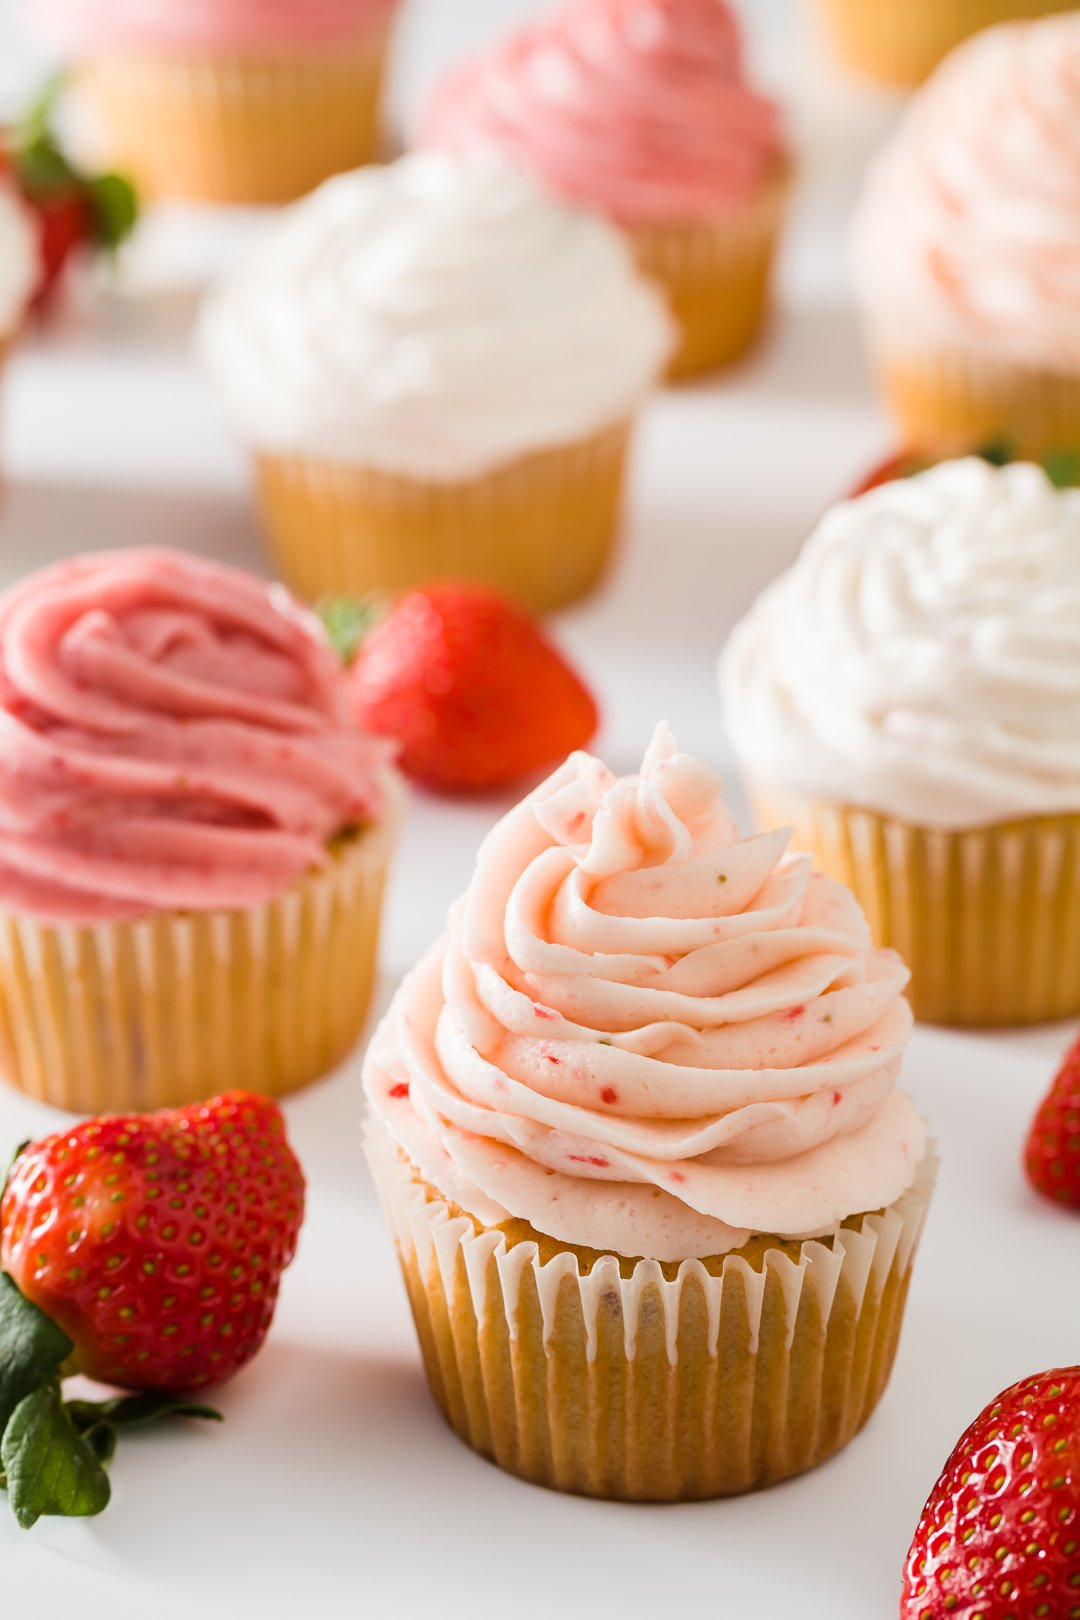 cupcakes frosted with three types of strawberry frosting on a white background with some scattered strawberries